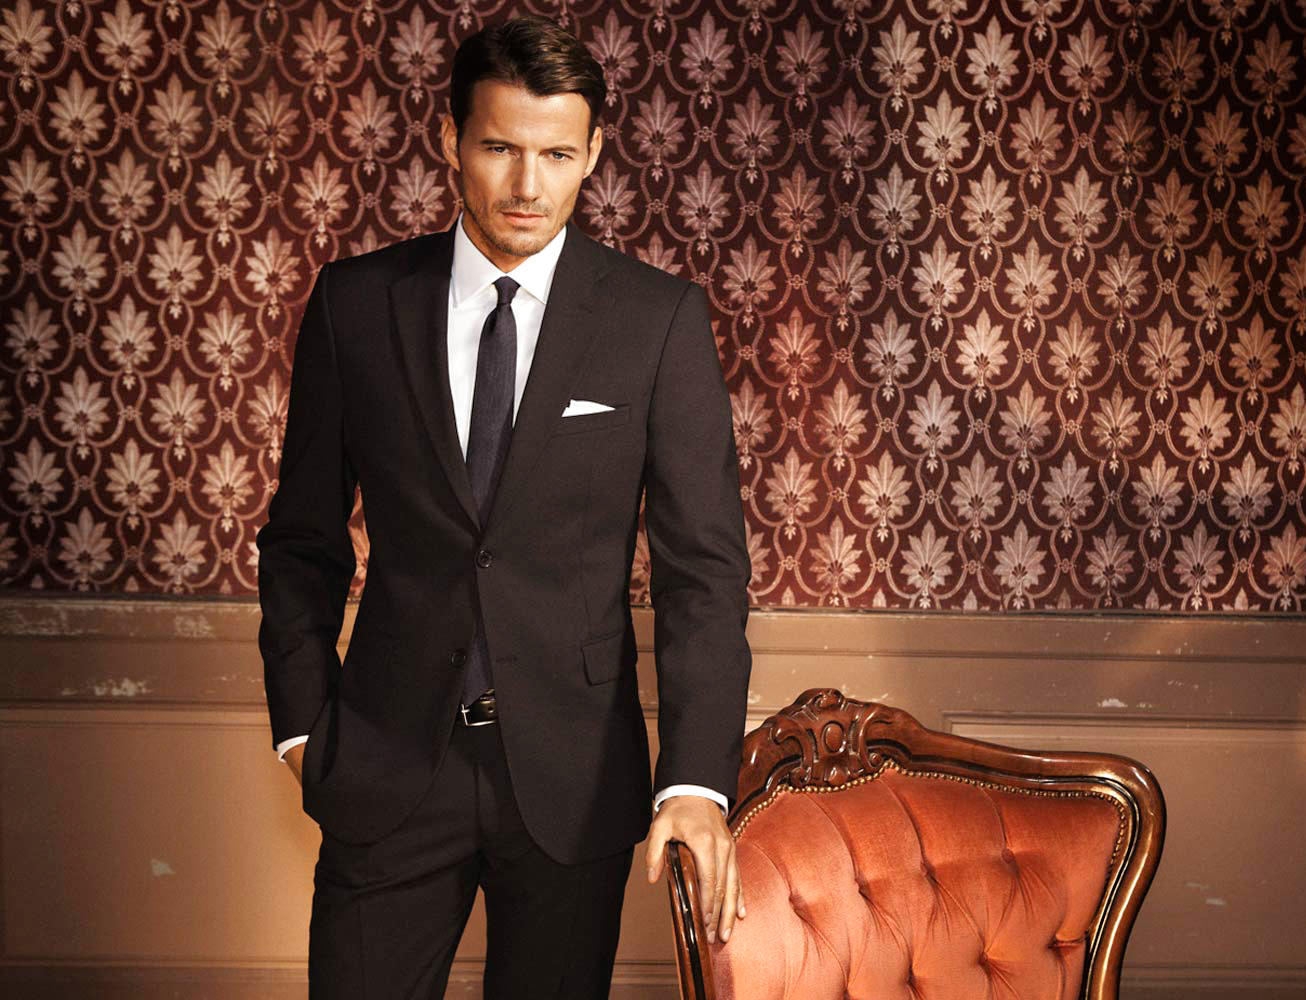 Men's Suit, Tie & Shirt Color Combinations Guide - Suits Expert